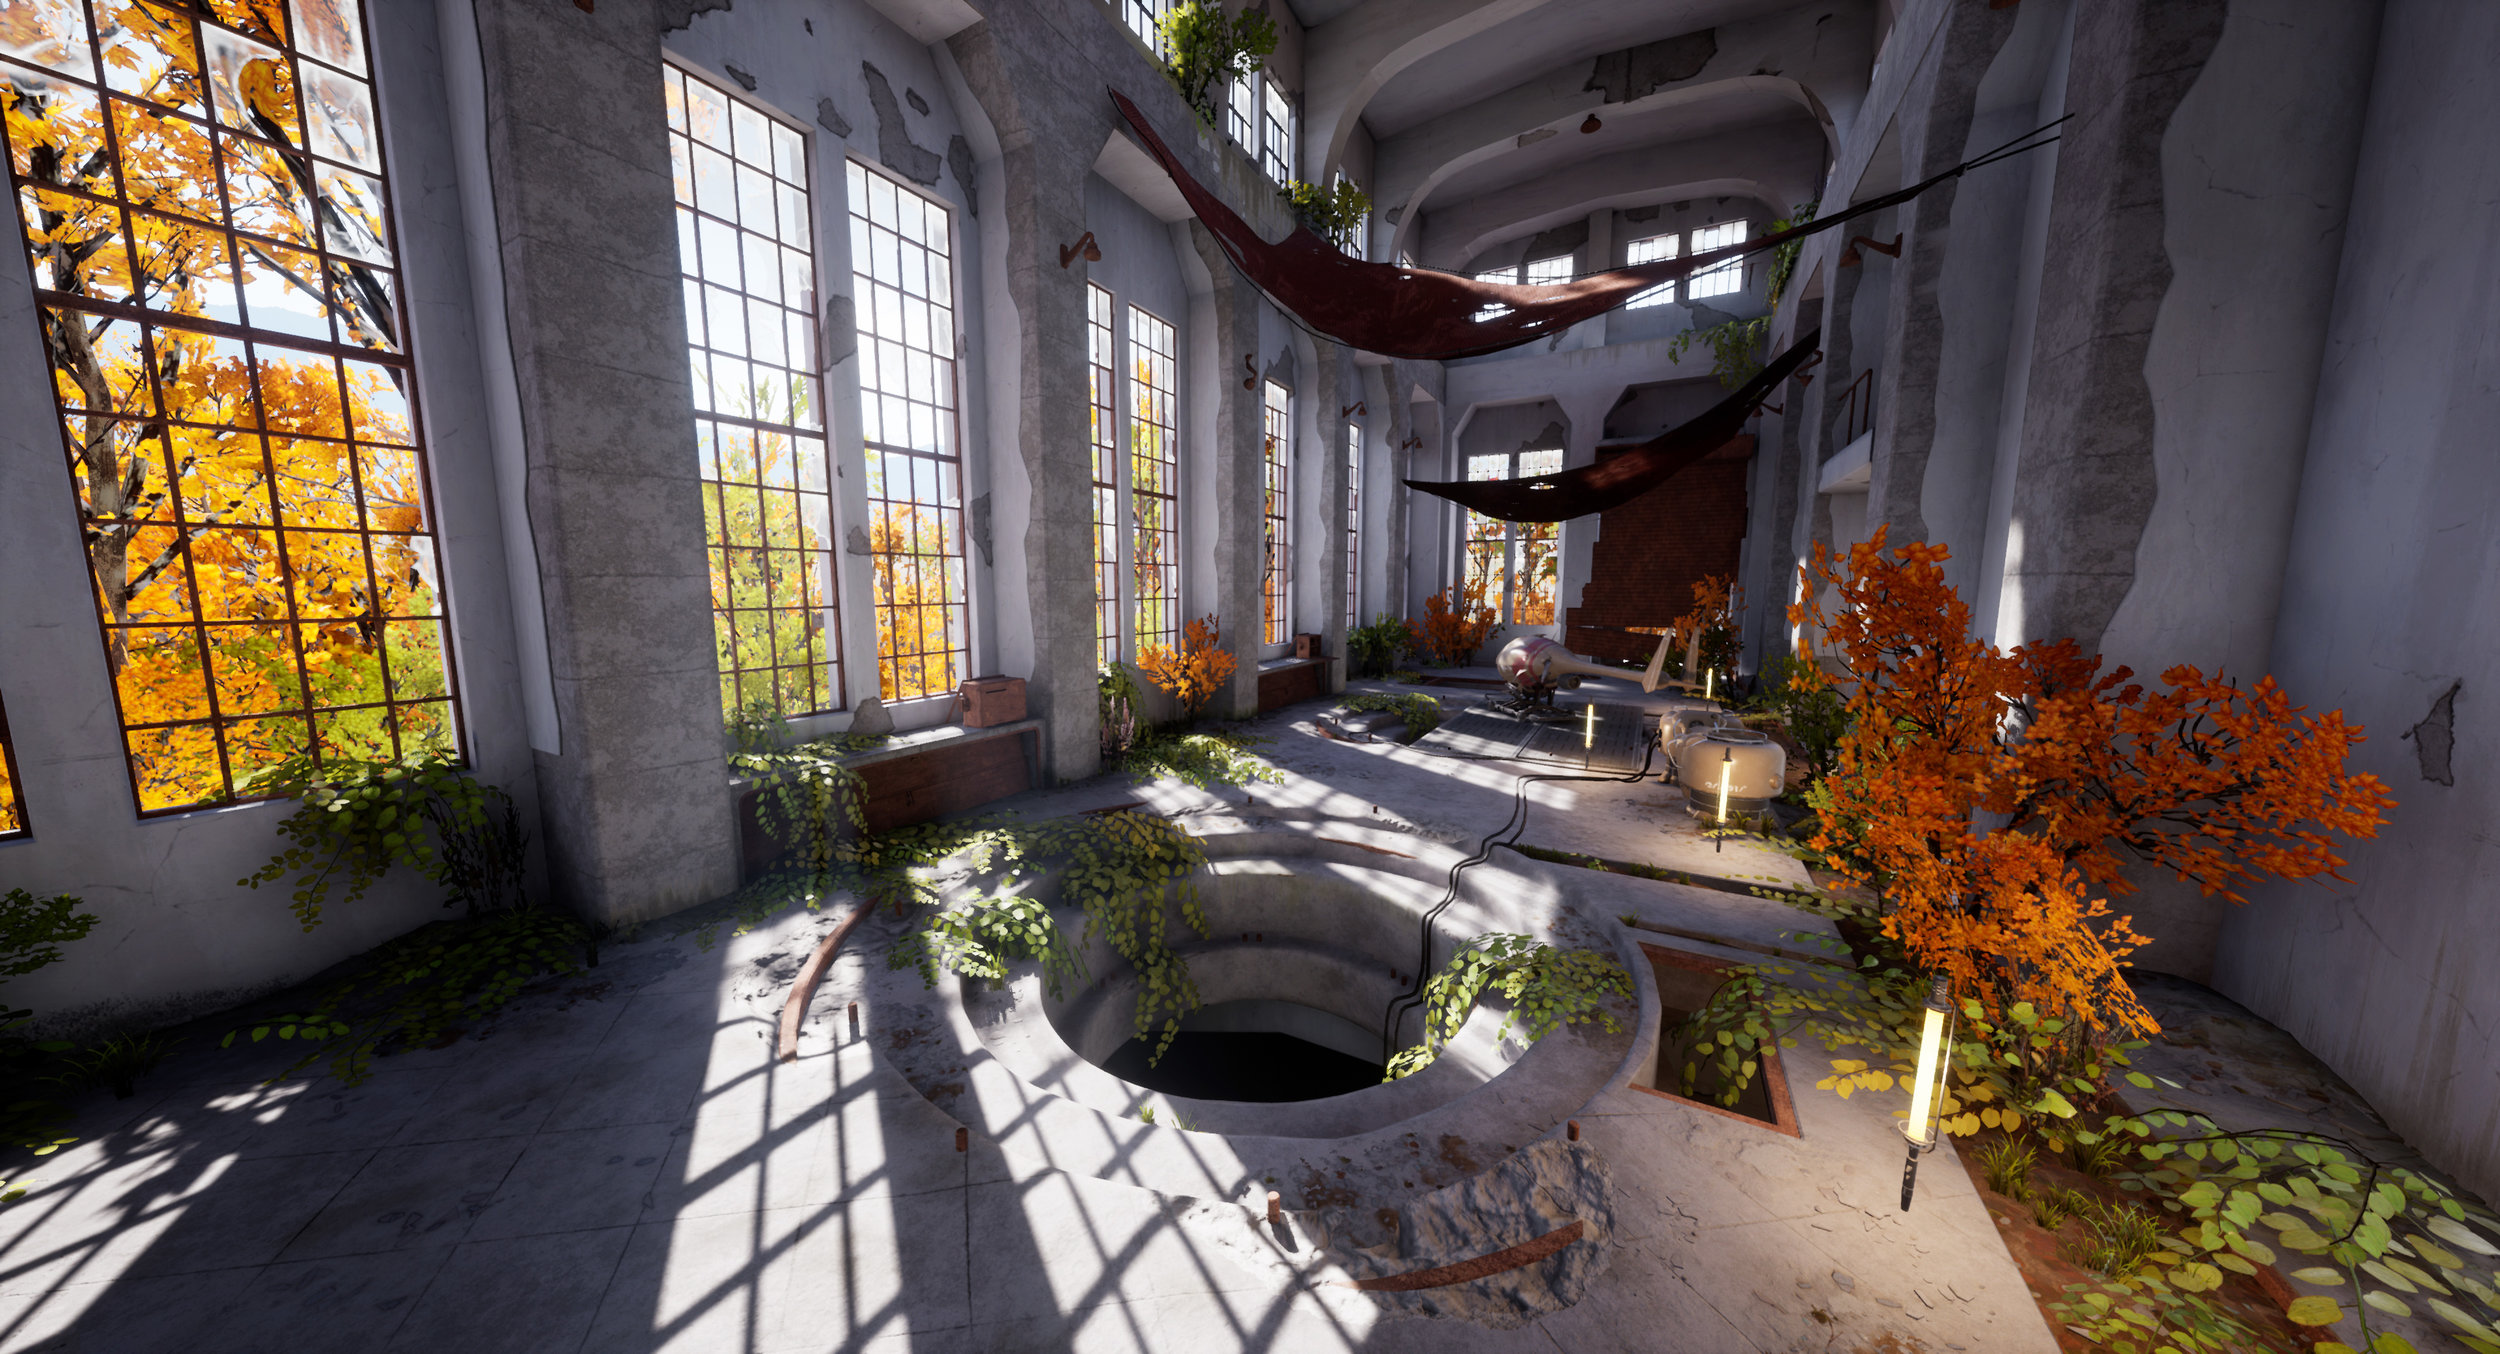 Game-ready environment I made in Unreal 4. The building is based off of photos of an abandoned hydroelectric plant taken by Jordy Meow. I did the original vehicle and prop design. Most textures created in Substance Designer or baked from geometry. Scene is still a WIP.